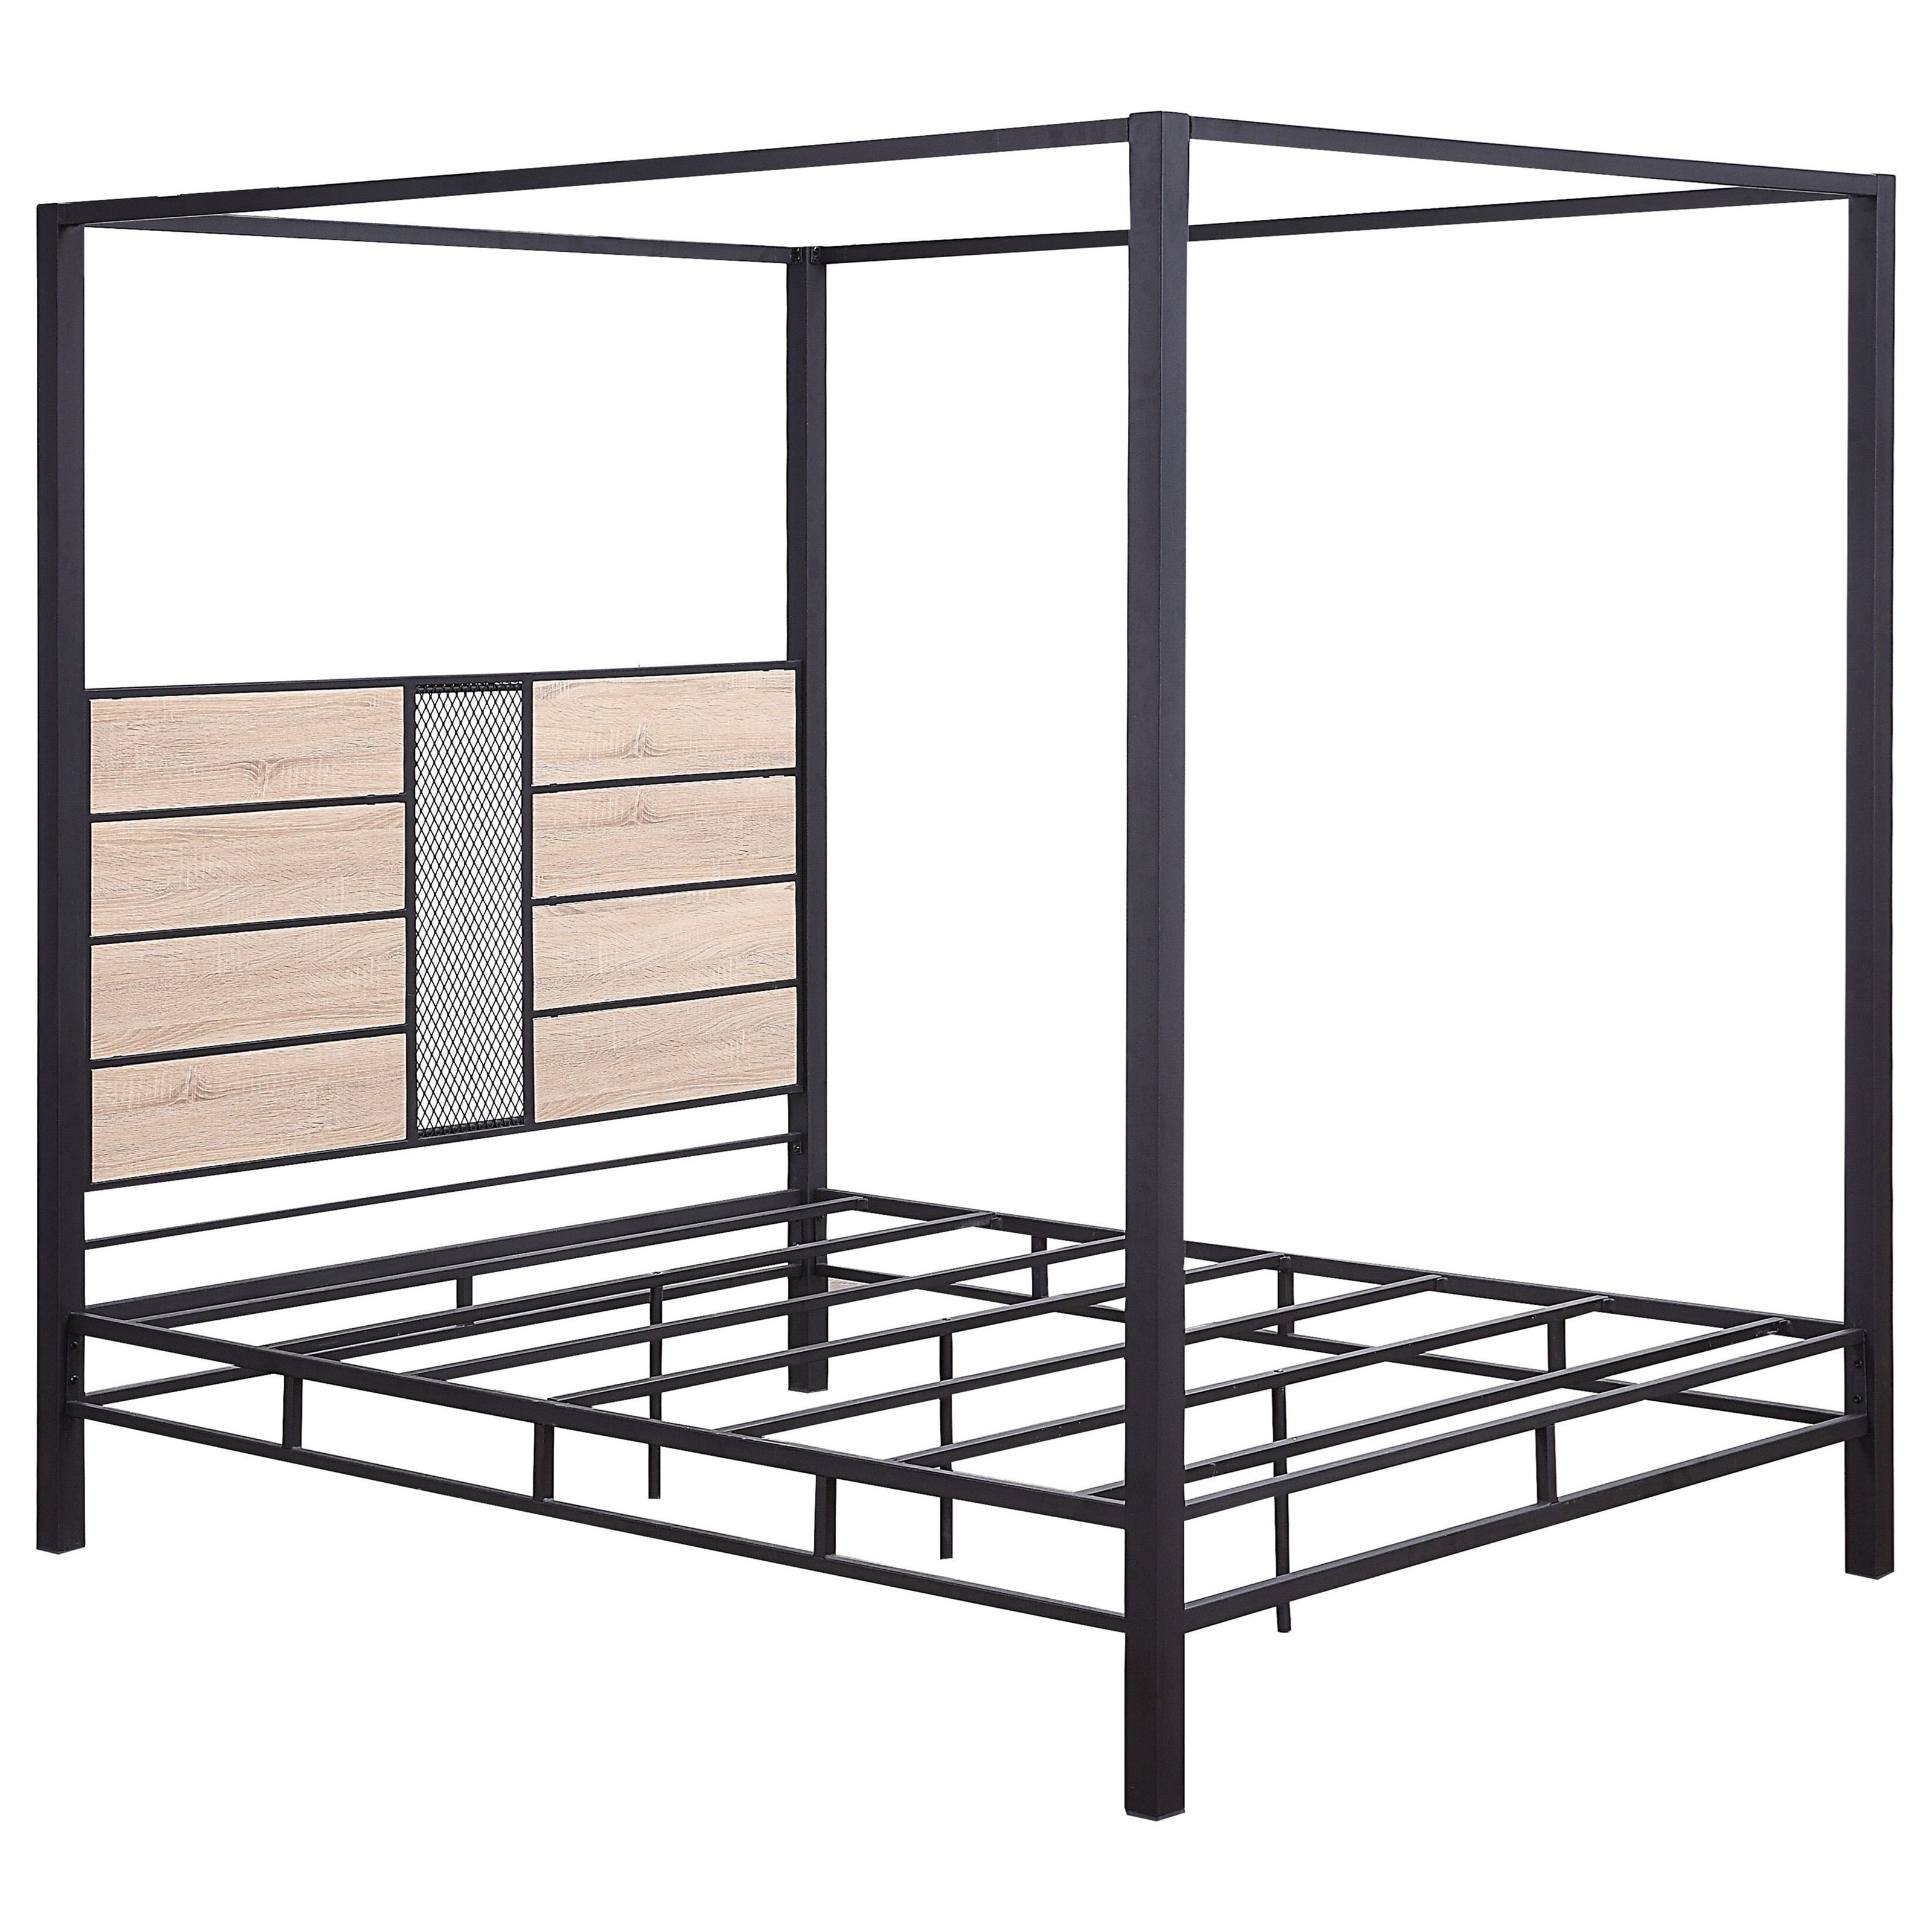 Baara Queen Canopy Bed  by Acme Furniture at Carolina Direct